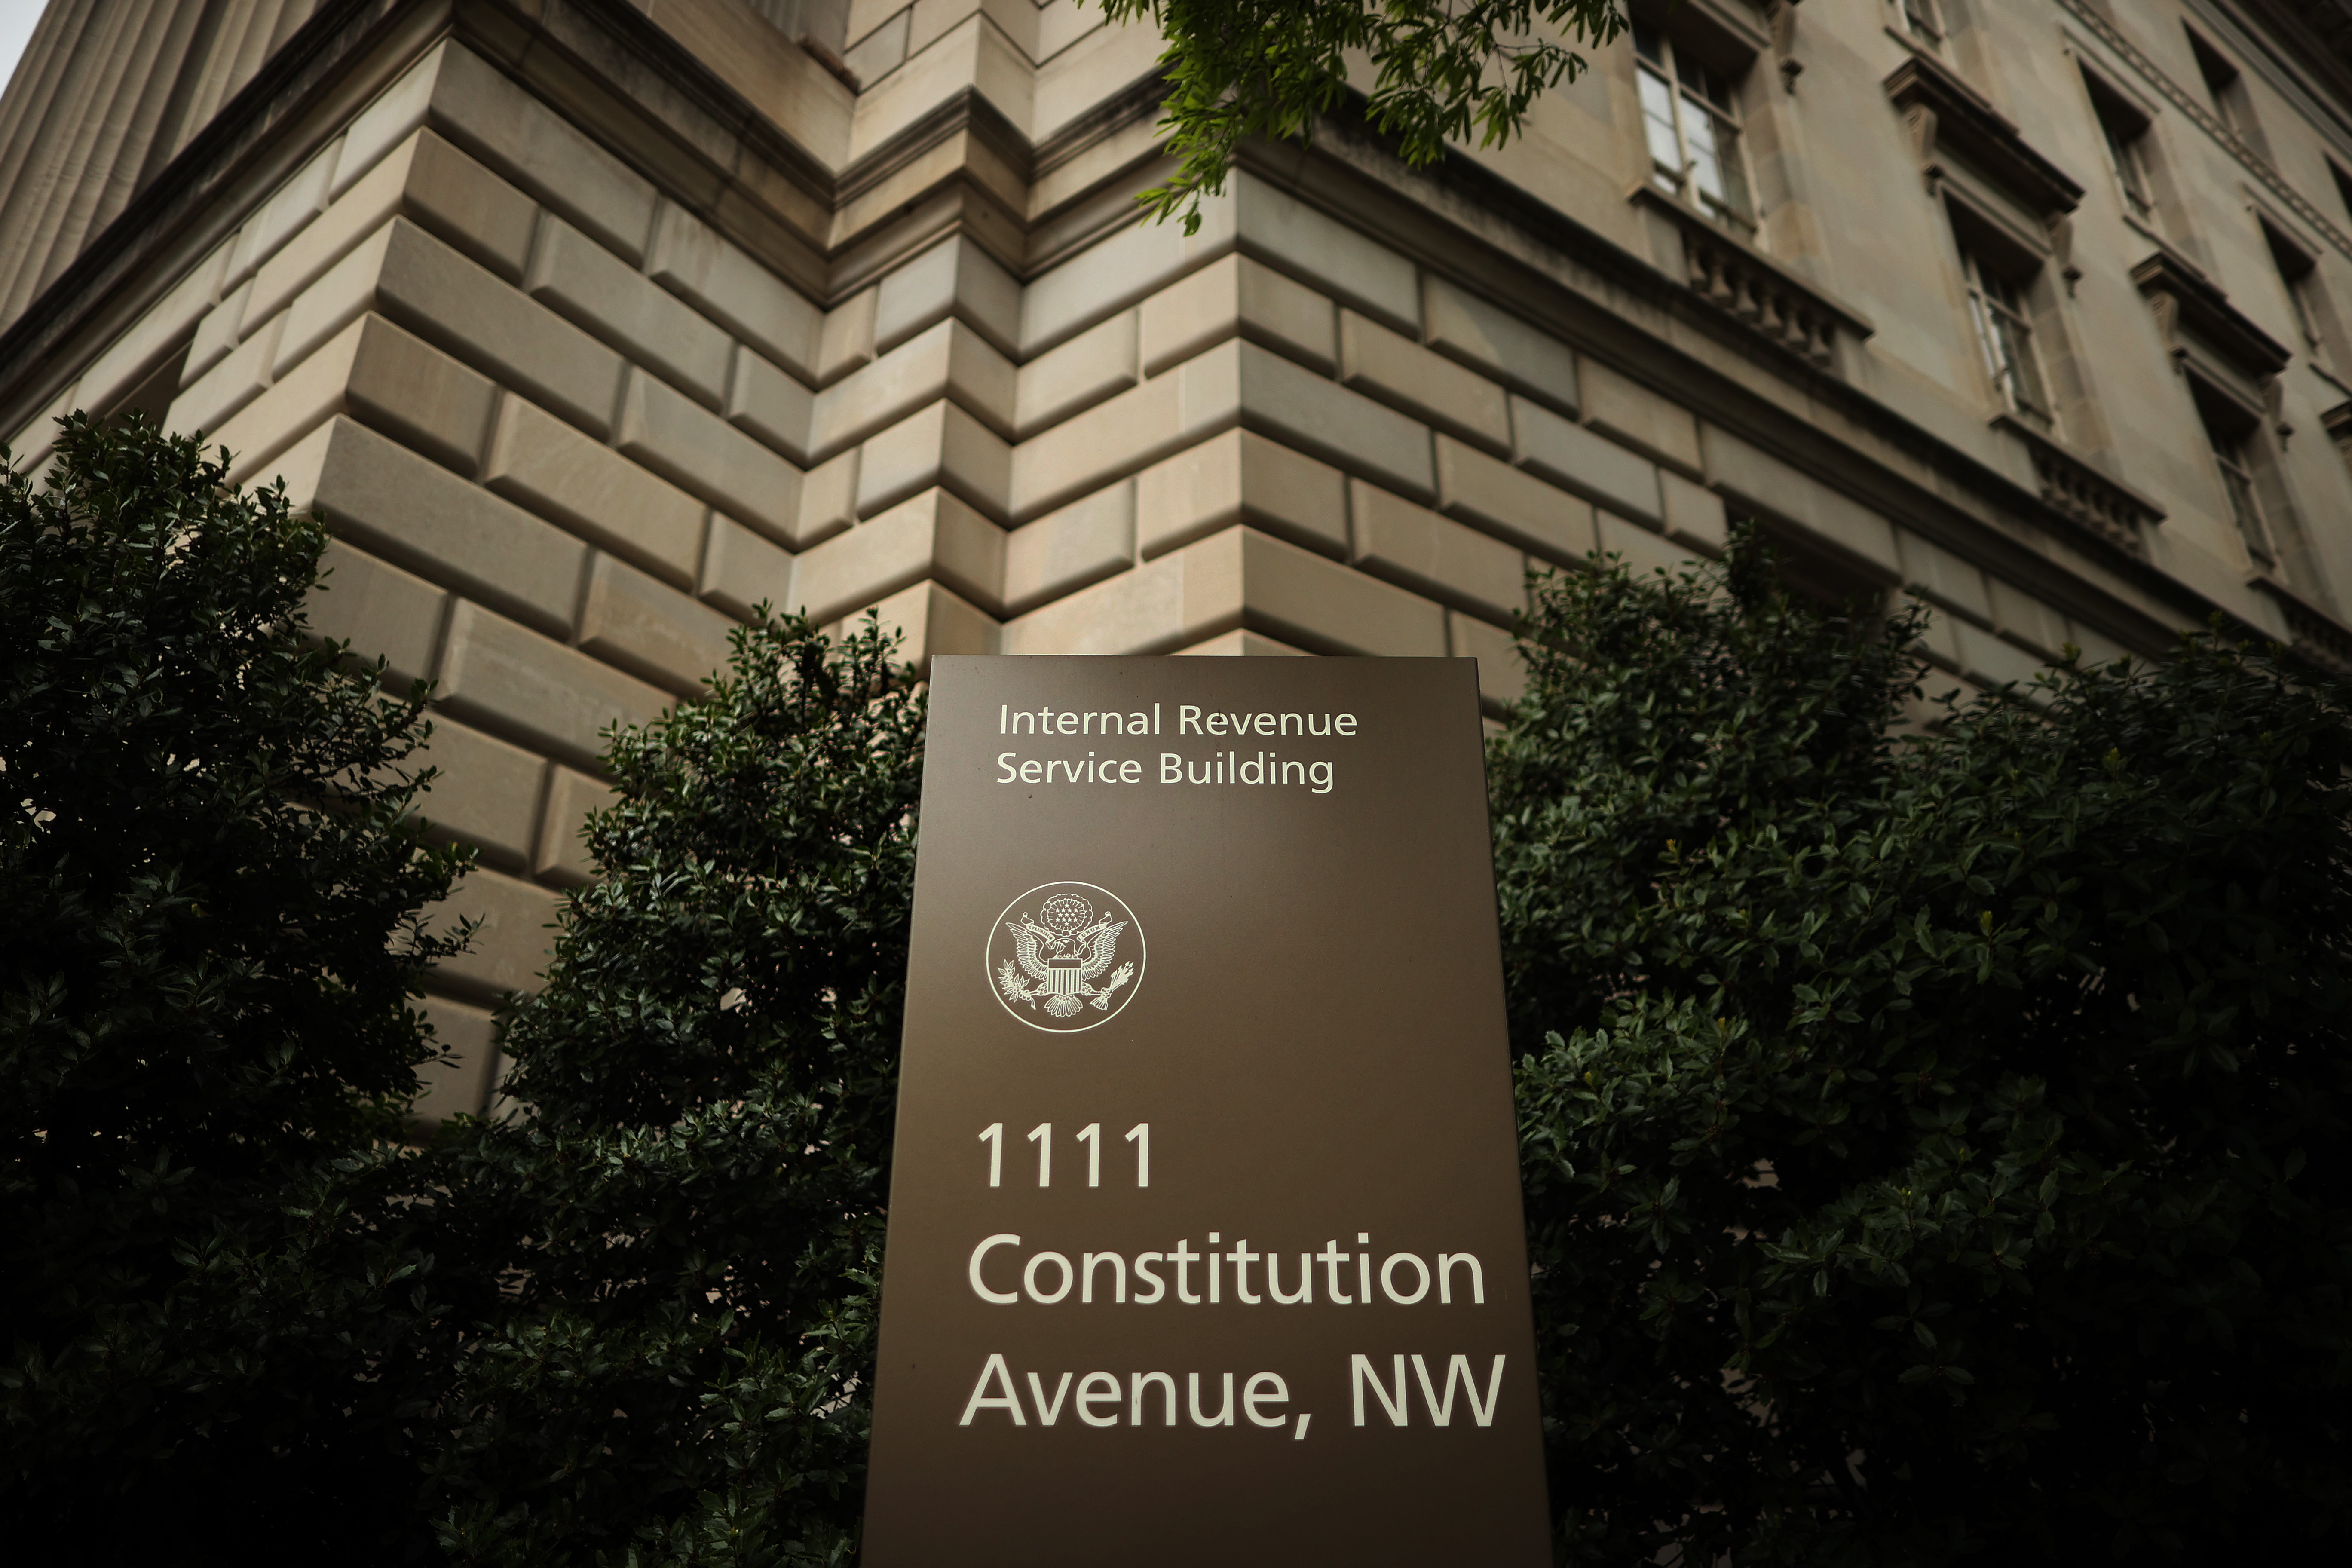 As The Irs Struggles To Open Mail And Answer The Phone Taxpayers Face Delays The Washington Post